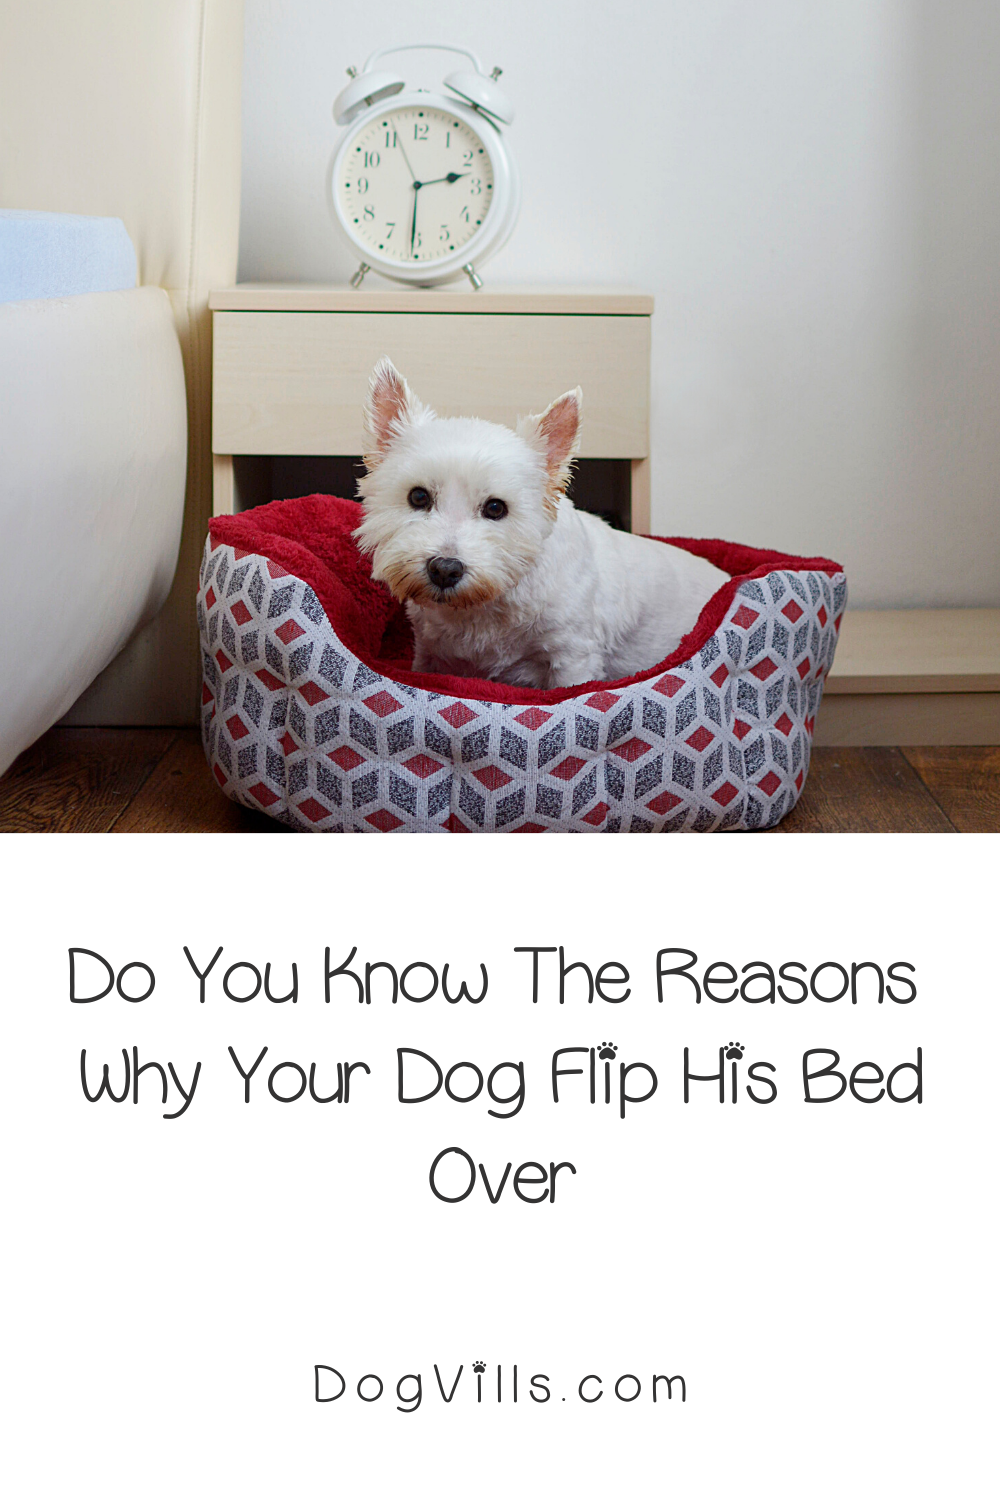 10 Reasons Why Your Dog Flips His Bed Over Dogvills In 2020 Your Dog Dog Behavior Dog Behavior Chart